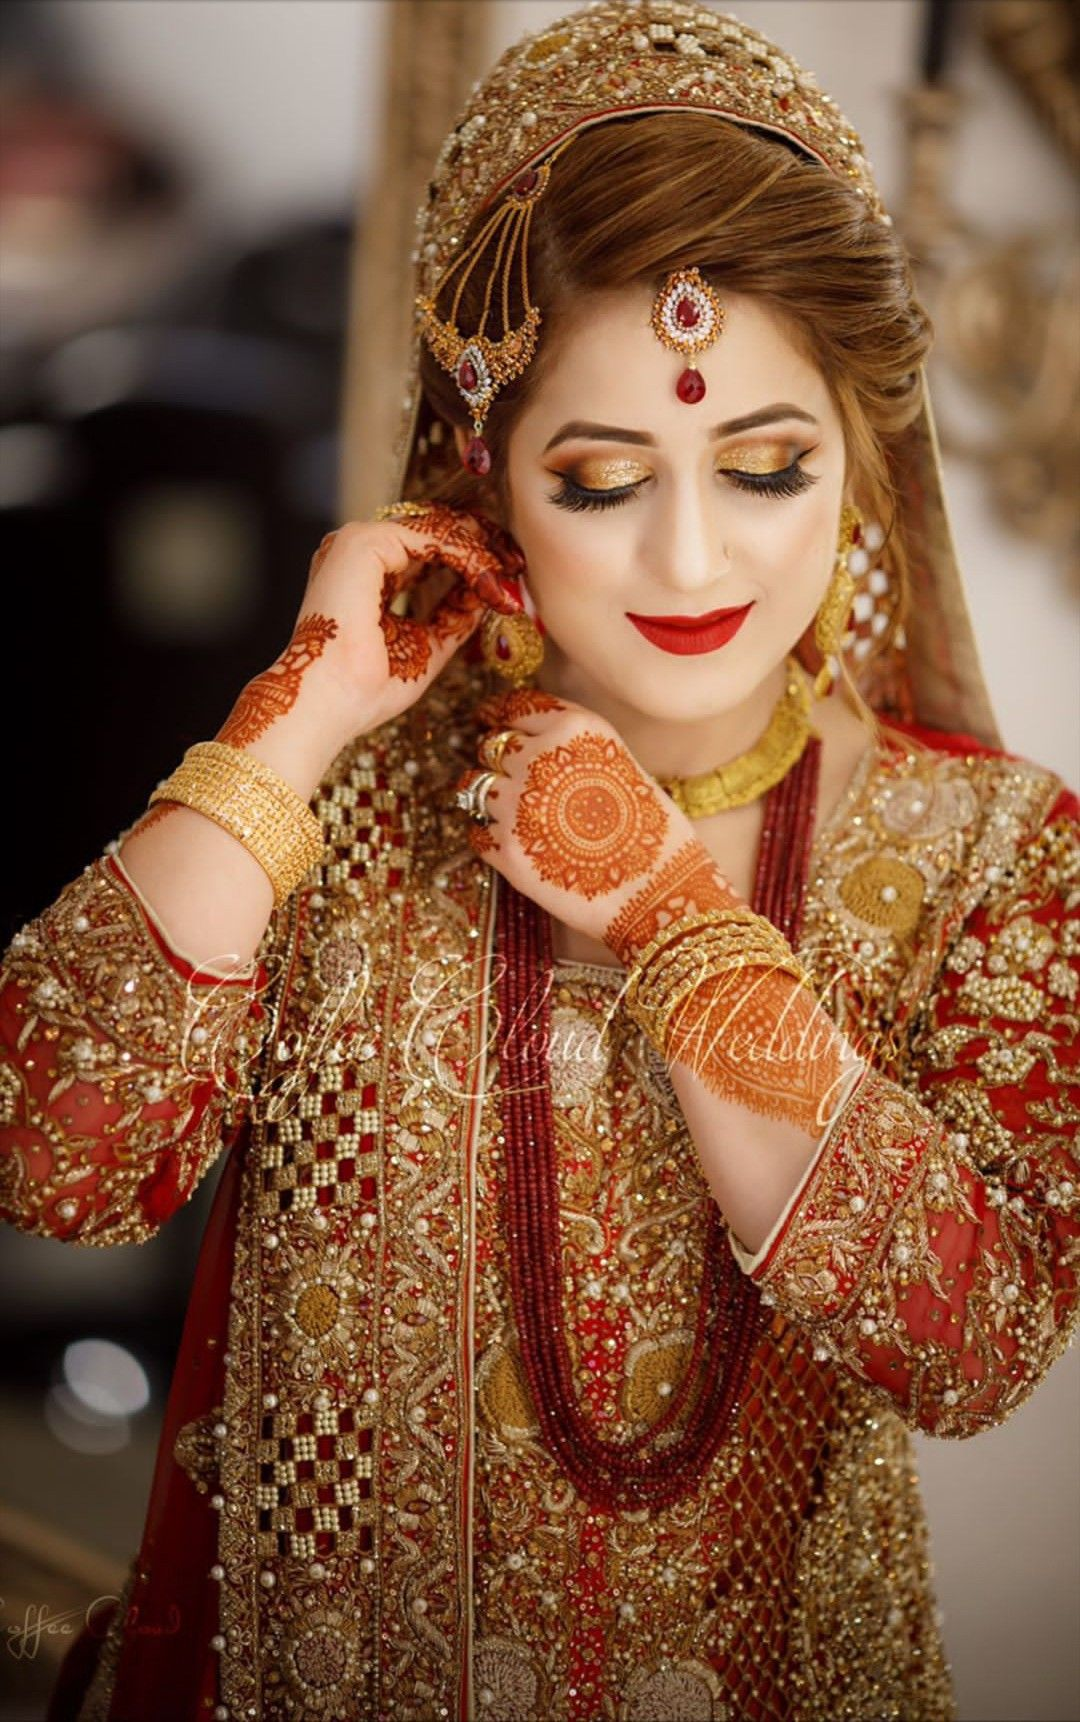 Pin By Mar U J On Bridal S Indian Bridal Photos Pakistani Bridal Makeup Bride Photoshoot